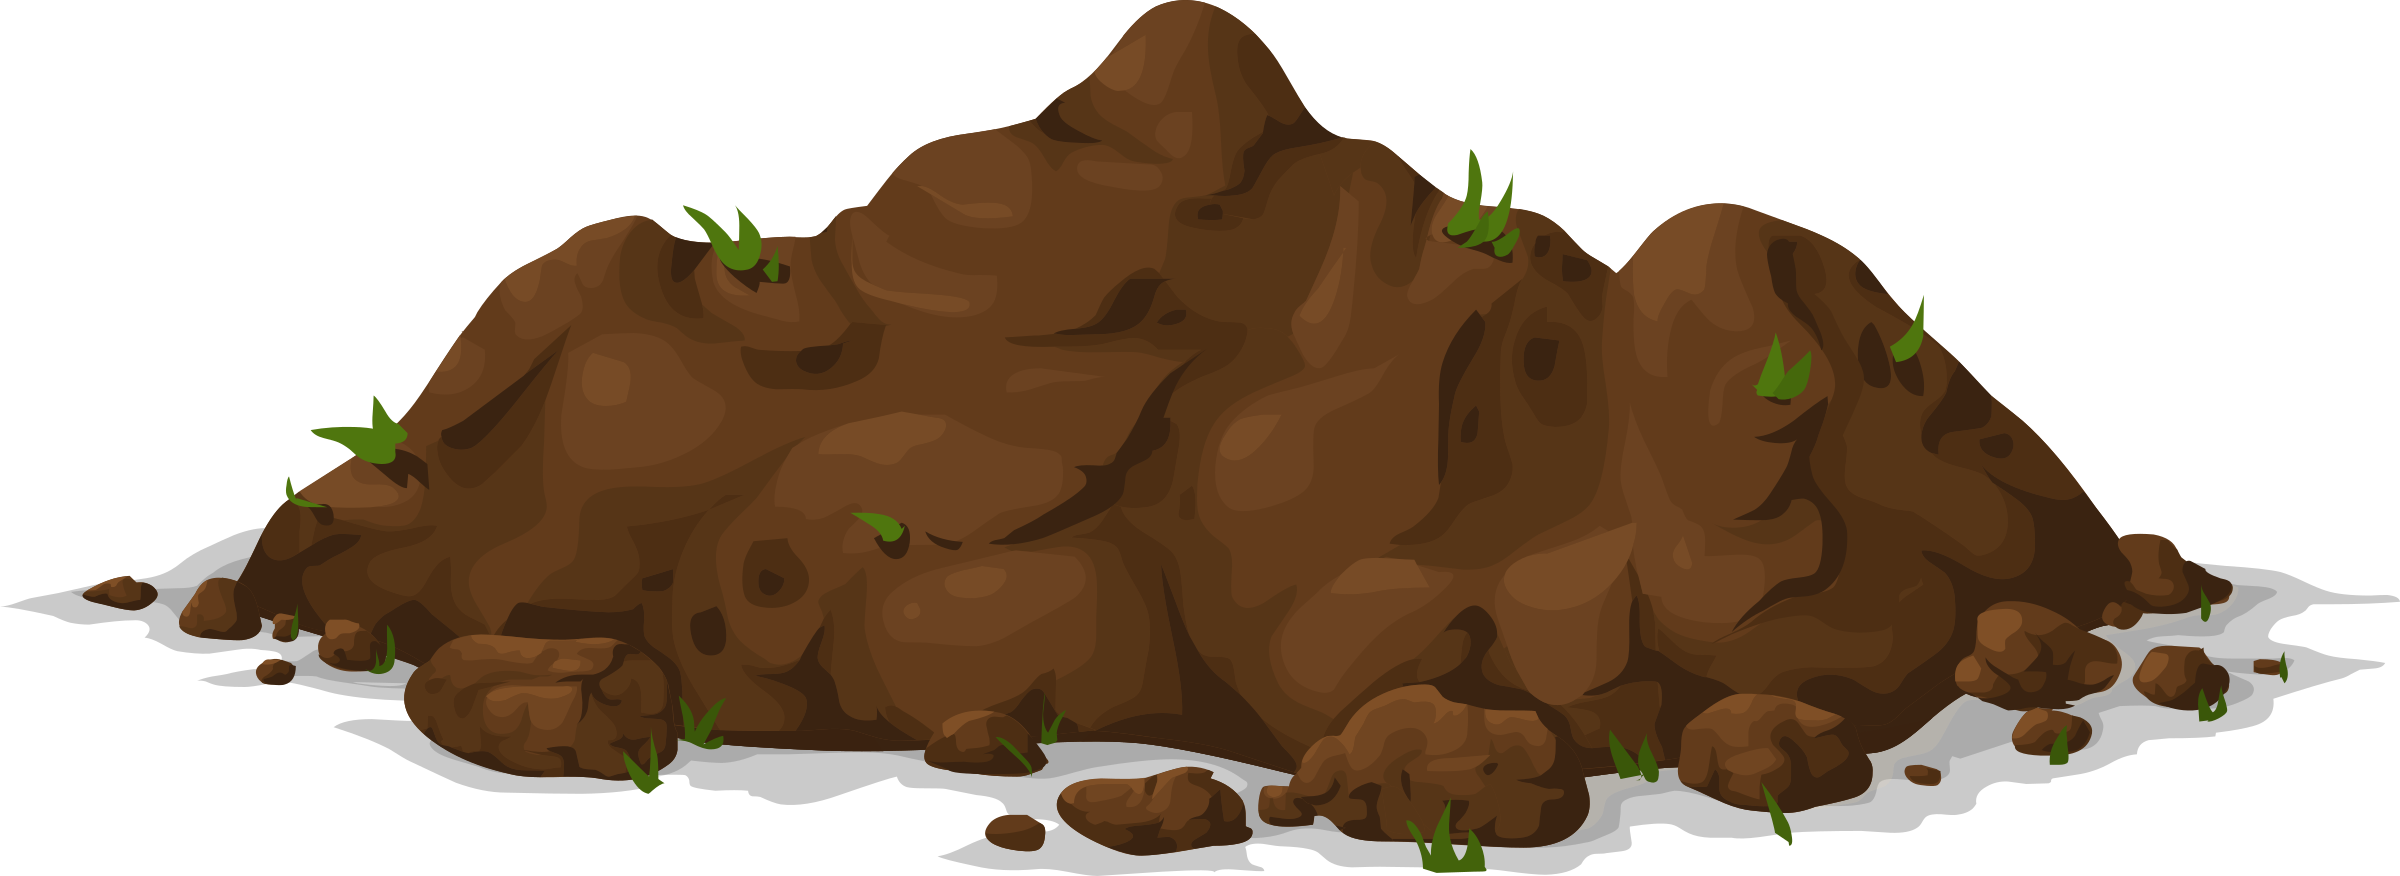 Pot with soil transparent background png. Collection of mud